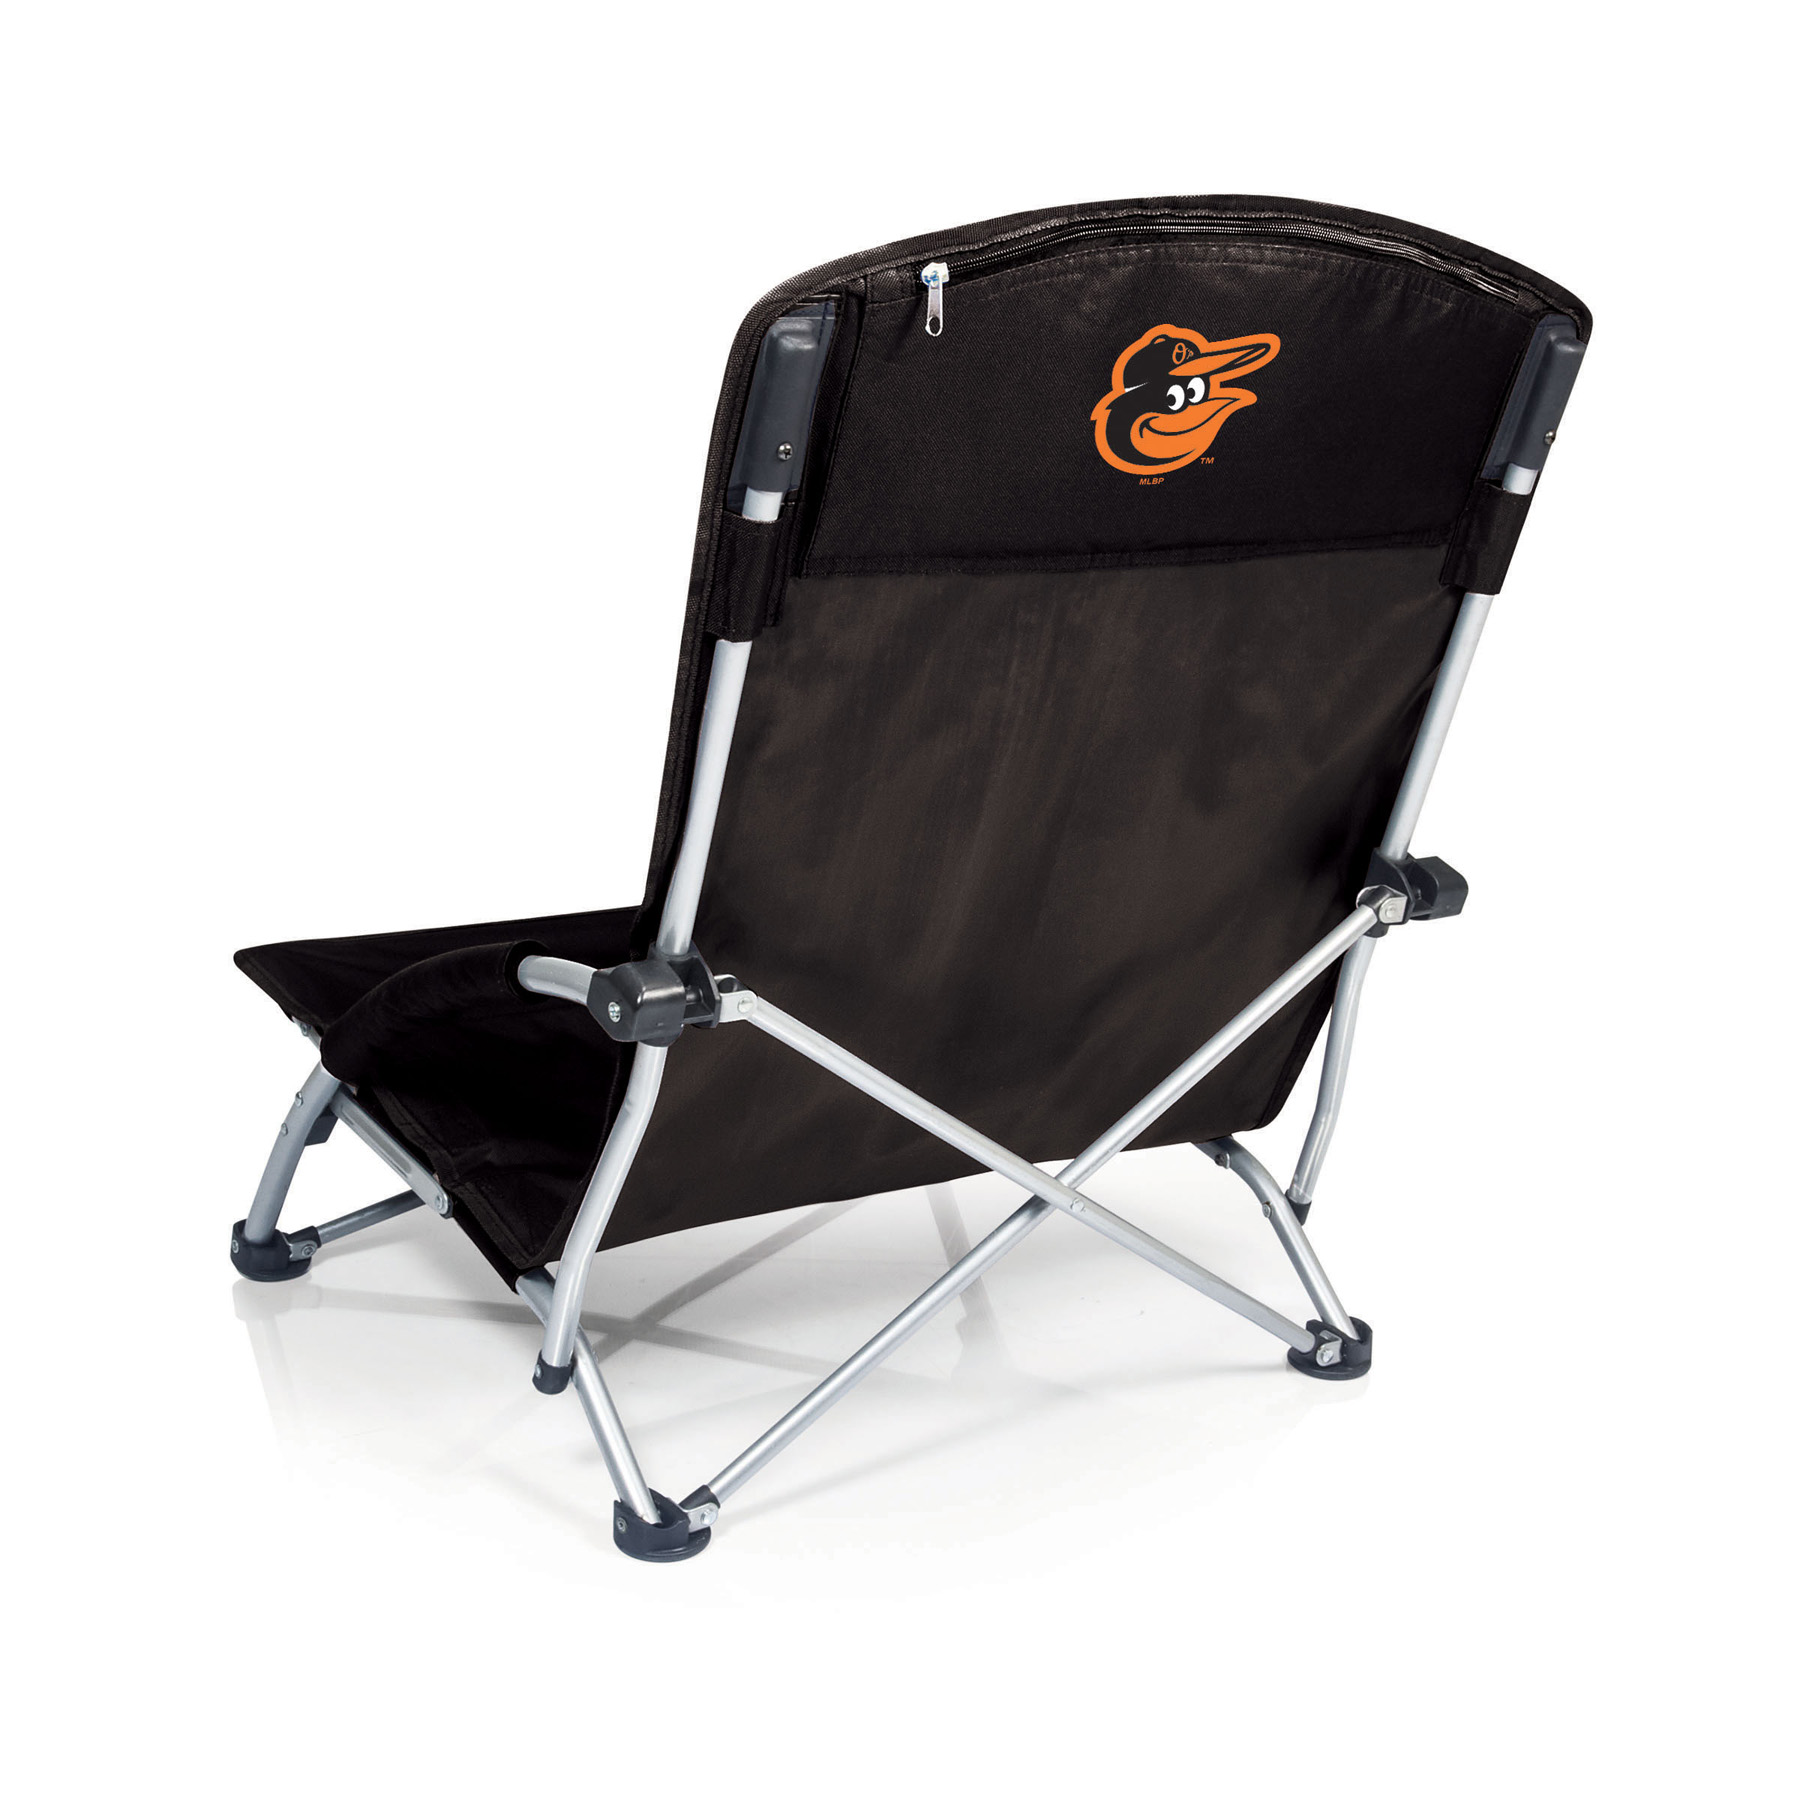 Picnic Time Tranquility Chair - MLB - Black